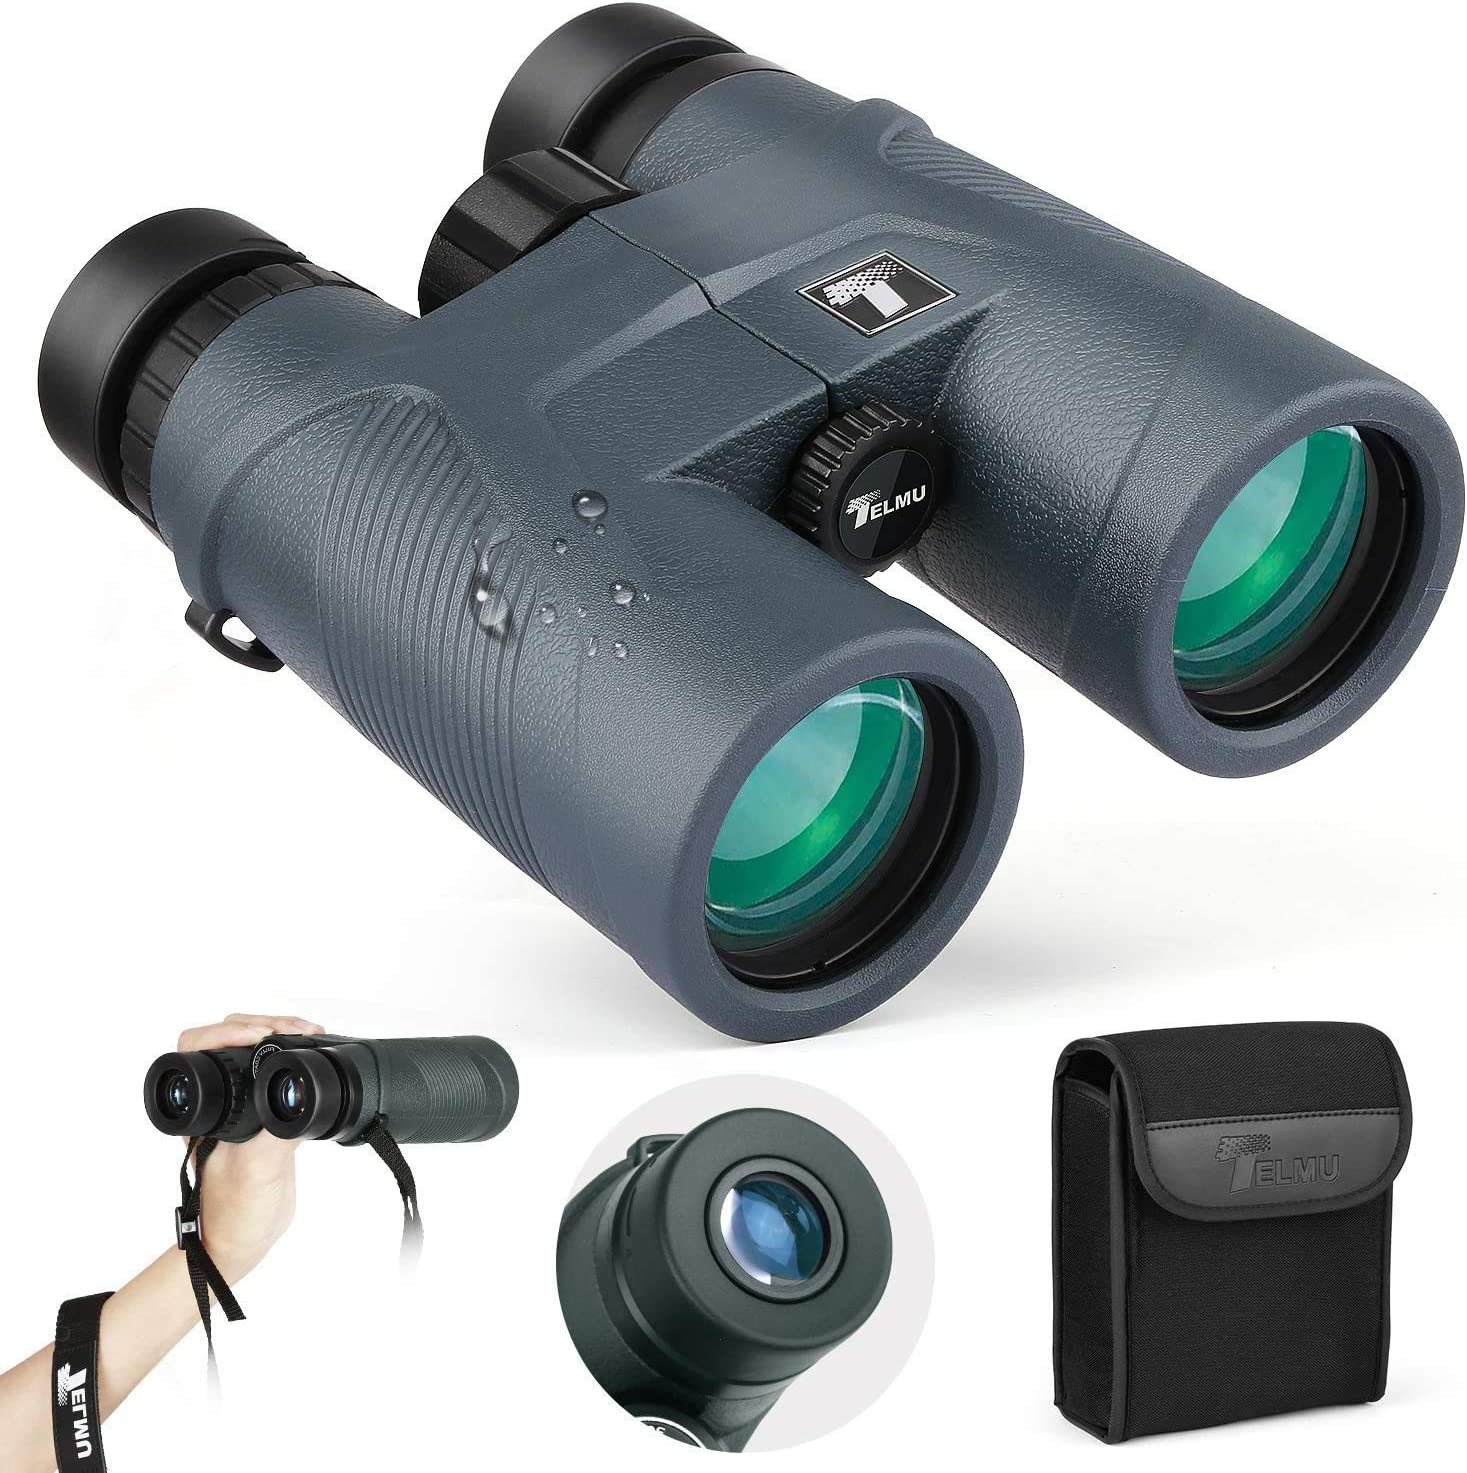 TELMU Binoculars 10×42 for Adults, with BAK-4 Prism and Multi Coated FMC for Outdoor Birdwatching Sports Events, Hunting and Hiking